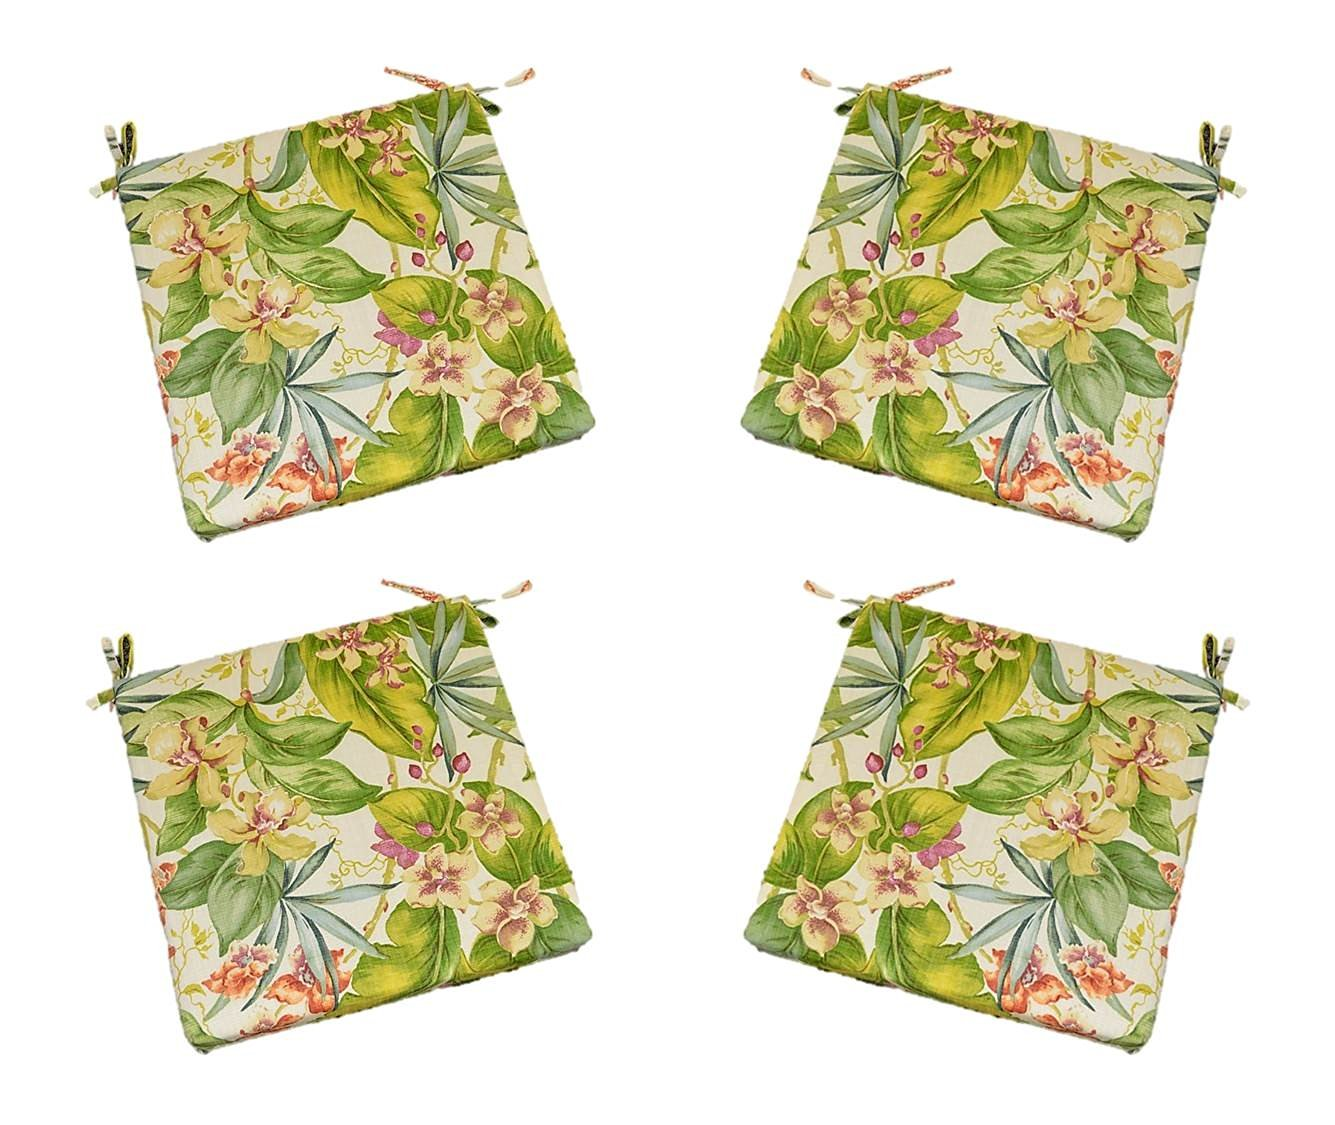 "Set of 4 - Indoor / Outdoor Tommy Bahama Fresco Floral - Pink, Green, Orange, Ivory Tropical Floral Fabric Universal 2"" Thick Foam Seat Cushions with Ties for Dining Patio Chairs - Choose Size (19 1/2"" x 18 1/2"")"